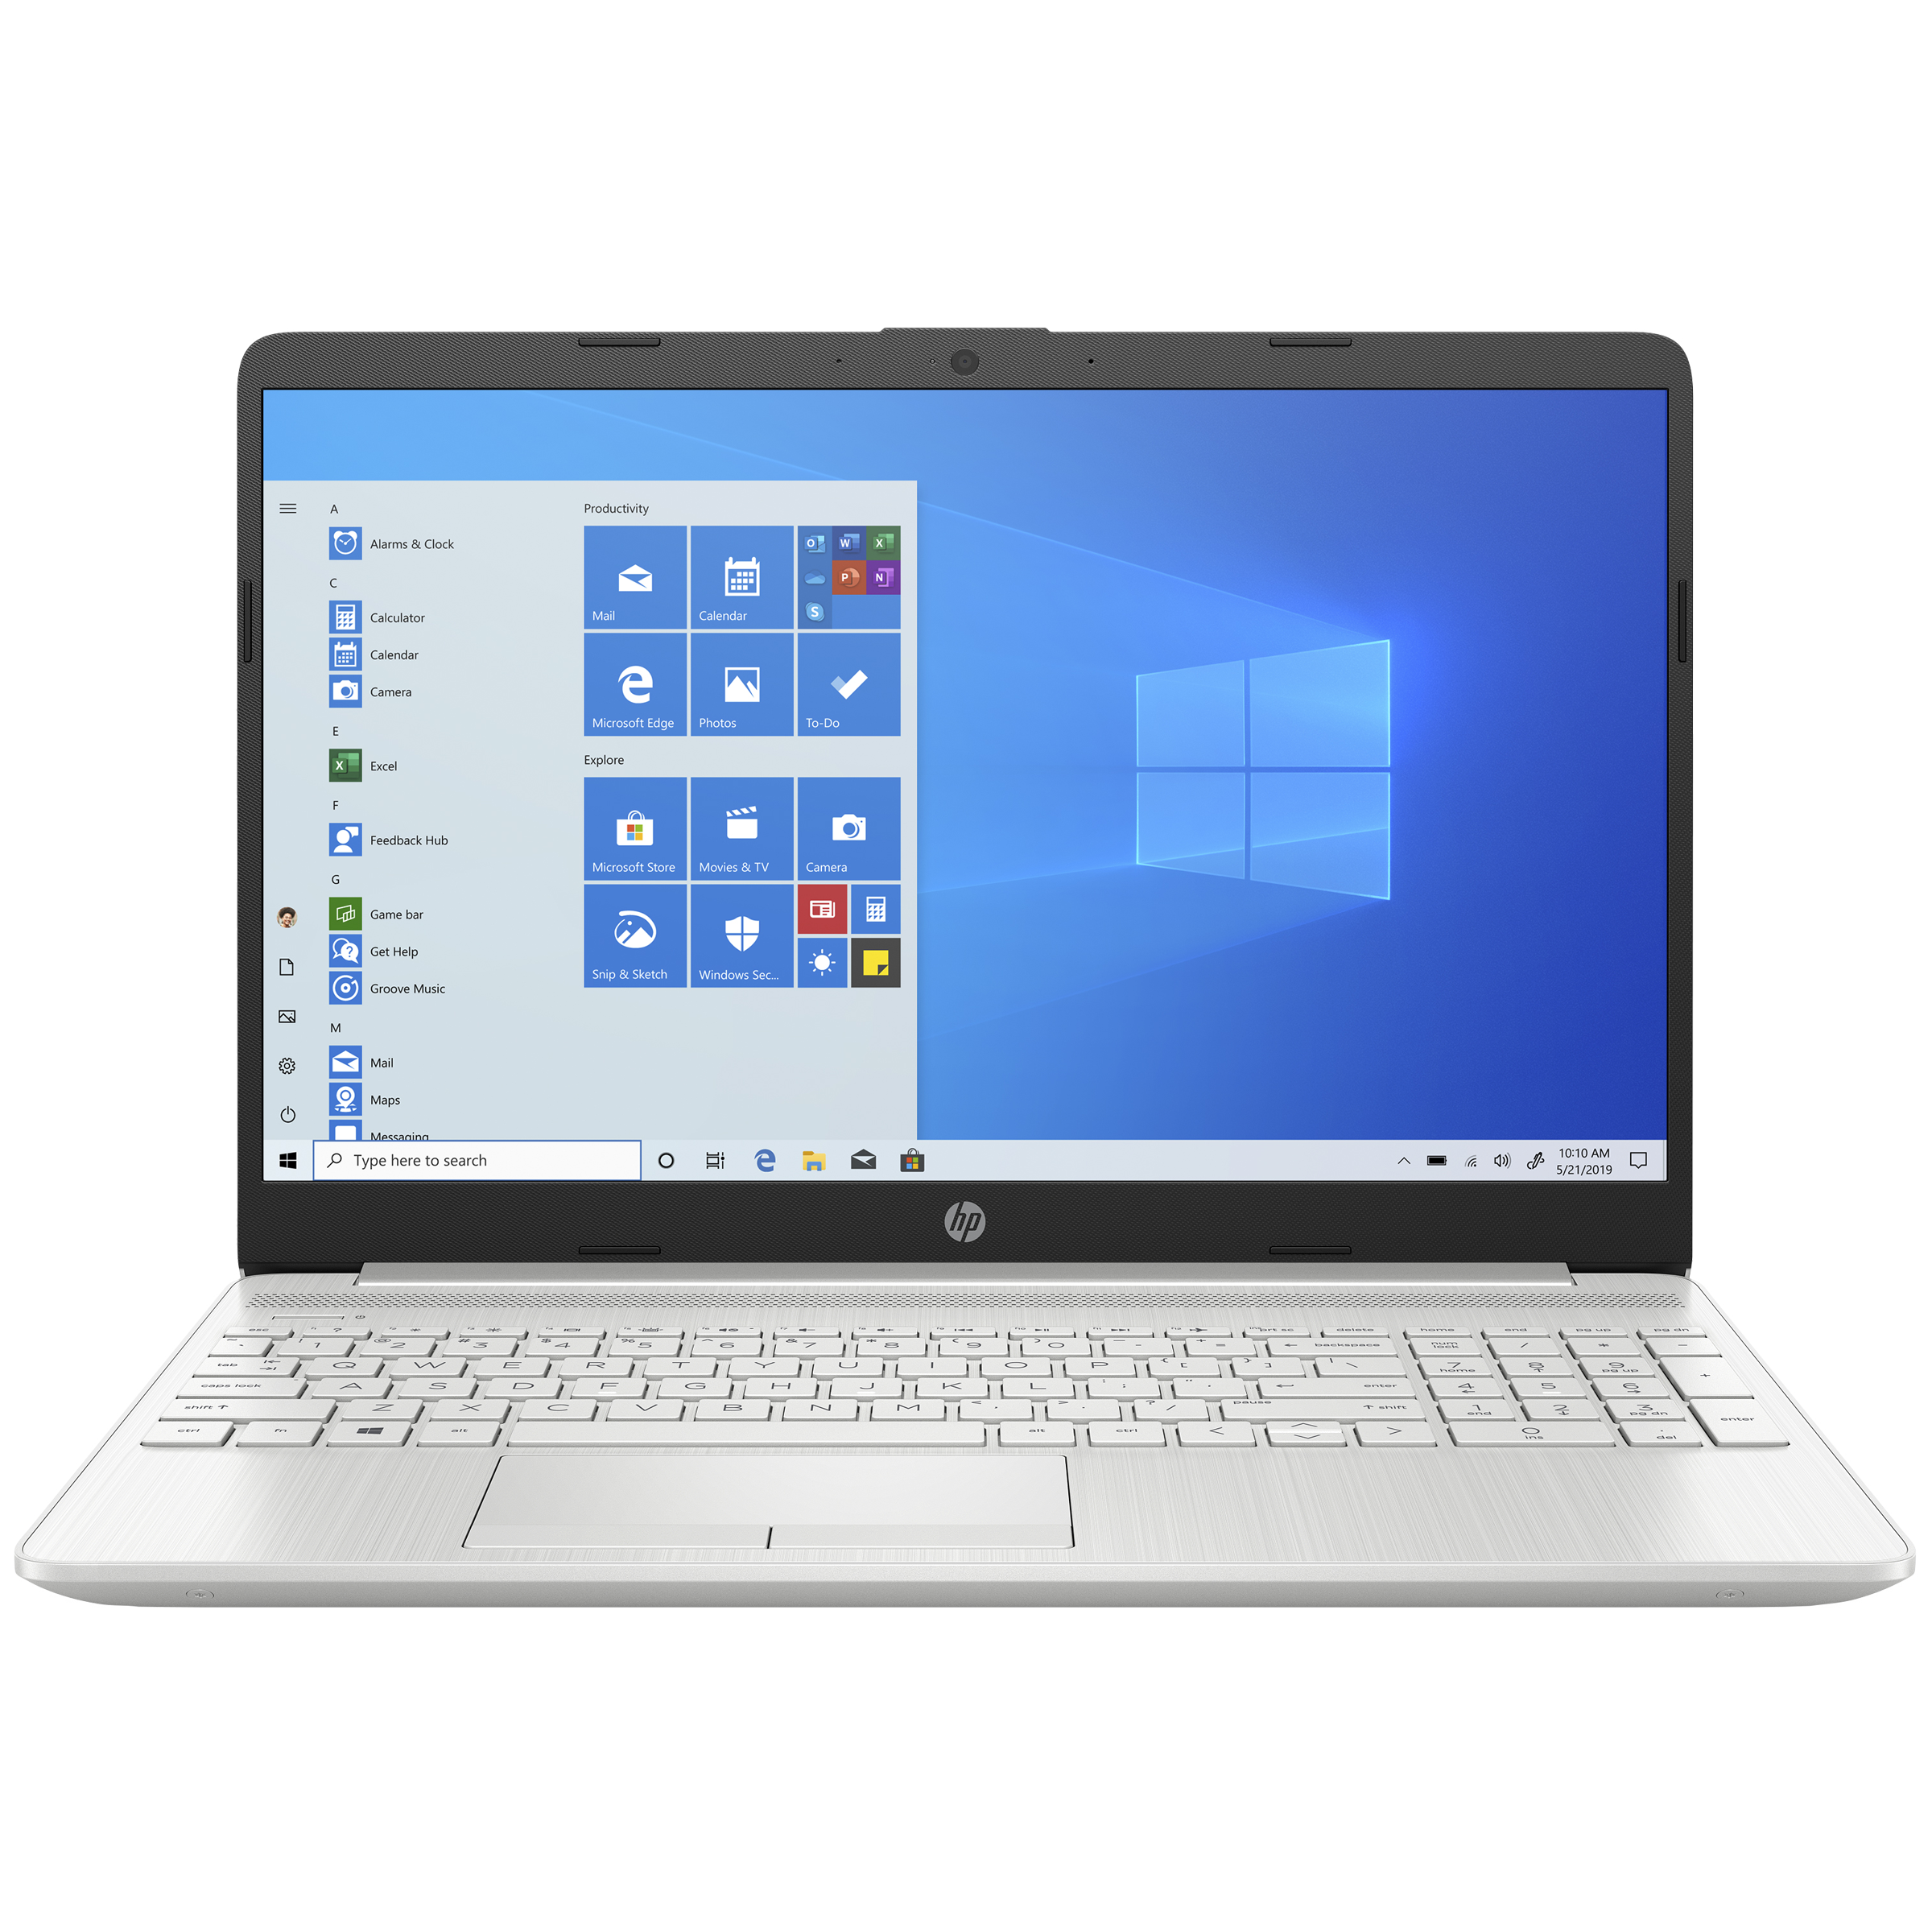 HP 15s-dr3001TU (34W43PA#ACJ) Core i3 11th Gen Windows 10 Home Thin and Light Laptop (8GB RAM, 1TB HDD, Intel UHD Graphics, 39.6cm, Natural Silver)_1